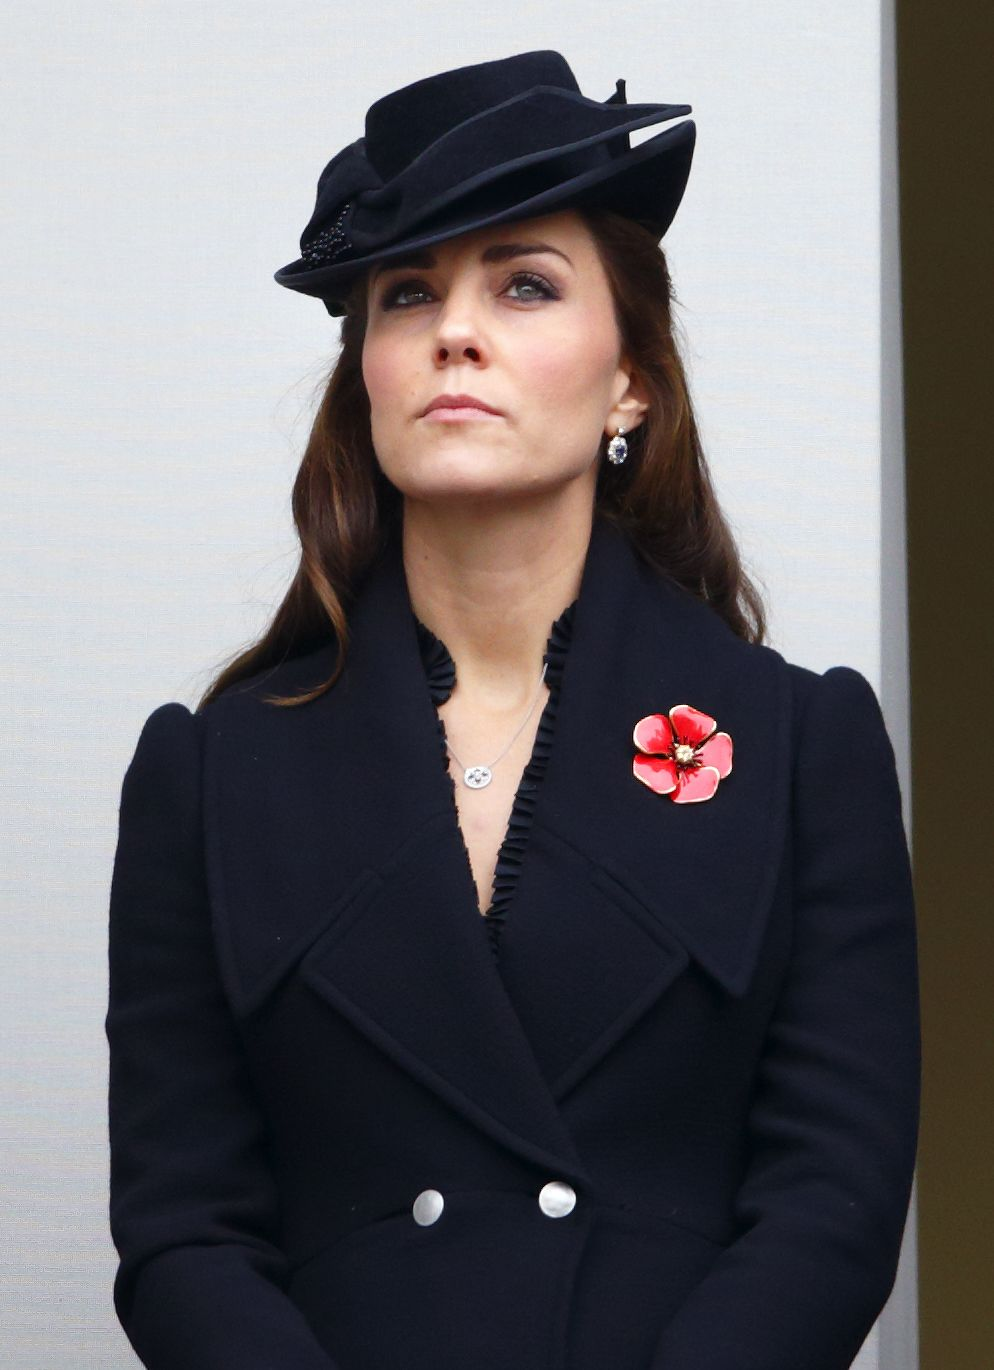 Duchess Kate attends the annual Remembrance Sunday Service to honor the contributions of British military servicemen and women, Nov. 9, 2014 - Max Mumby/Indigo/Getty Images